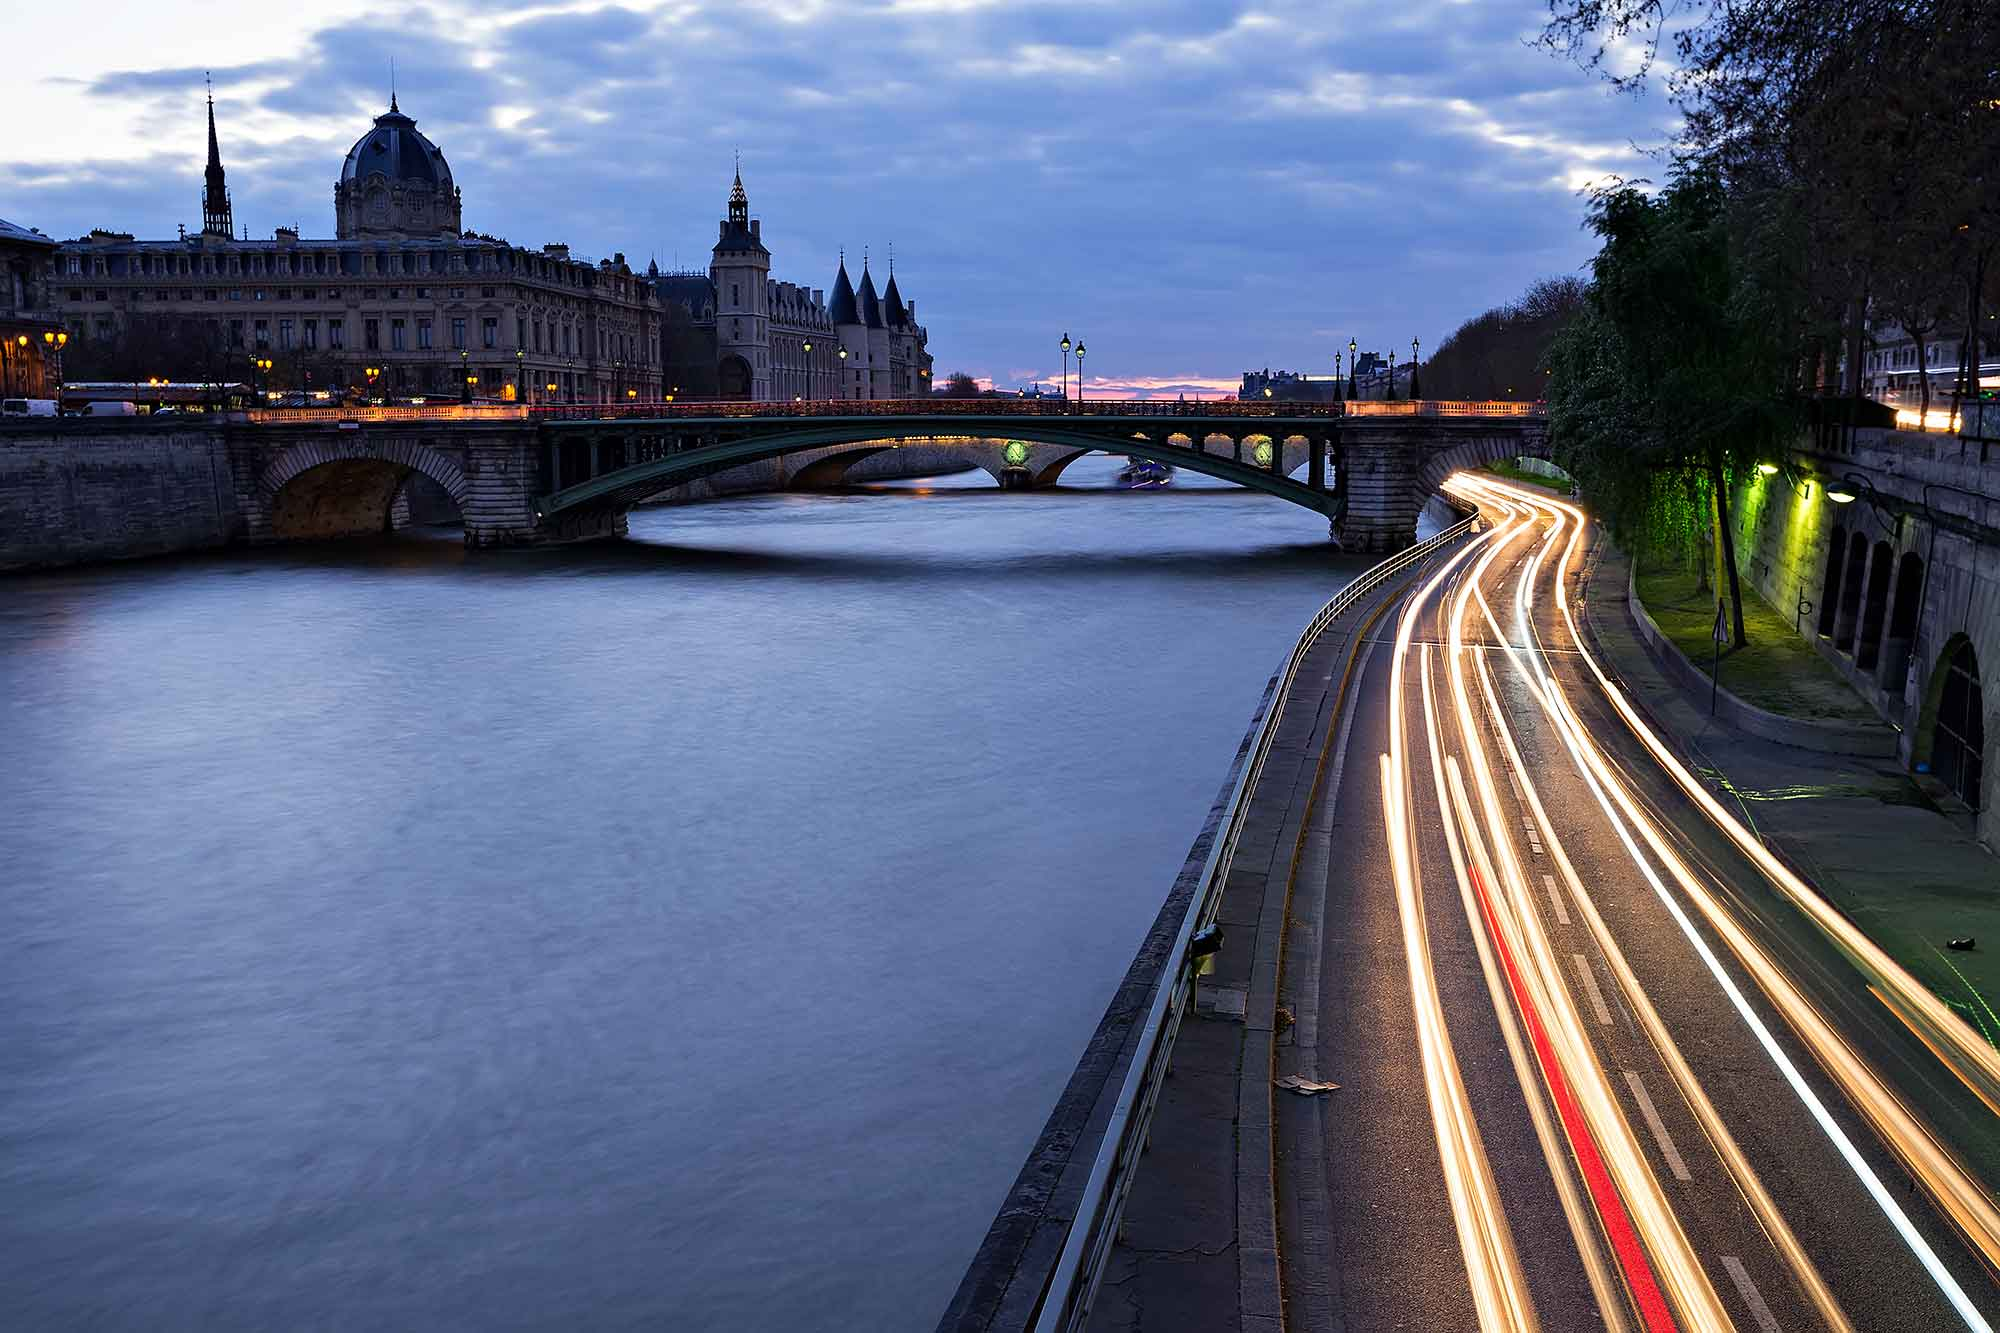 Traffic & Seine in Paris, France. © Ulli Maier & Nisa Maier